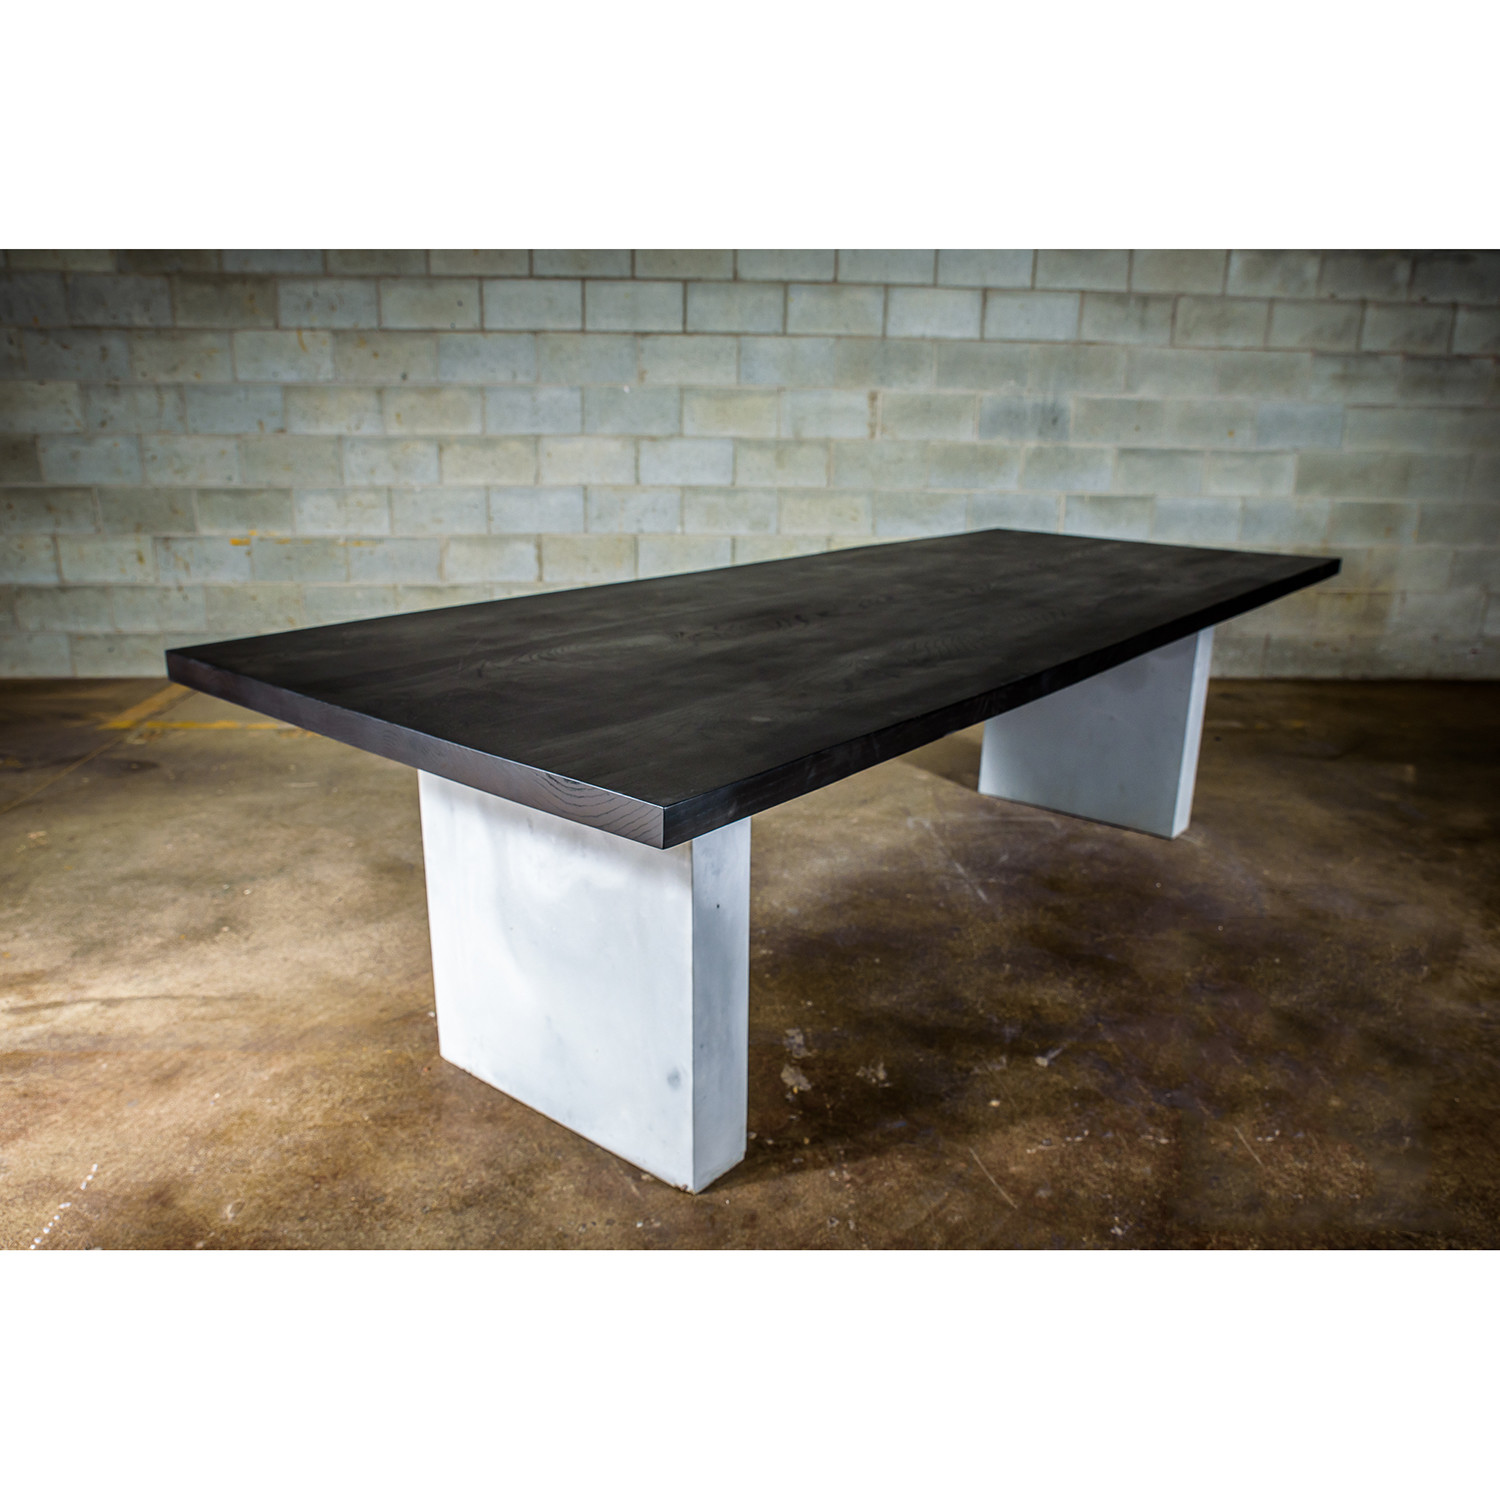 Dining Table Black Stained Ash Wood Concrete Legs L X W - Stained concrete table